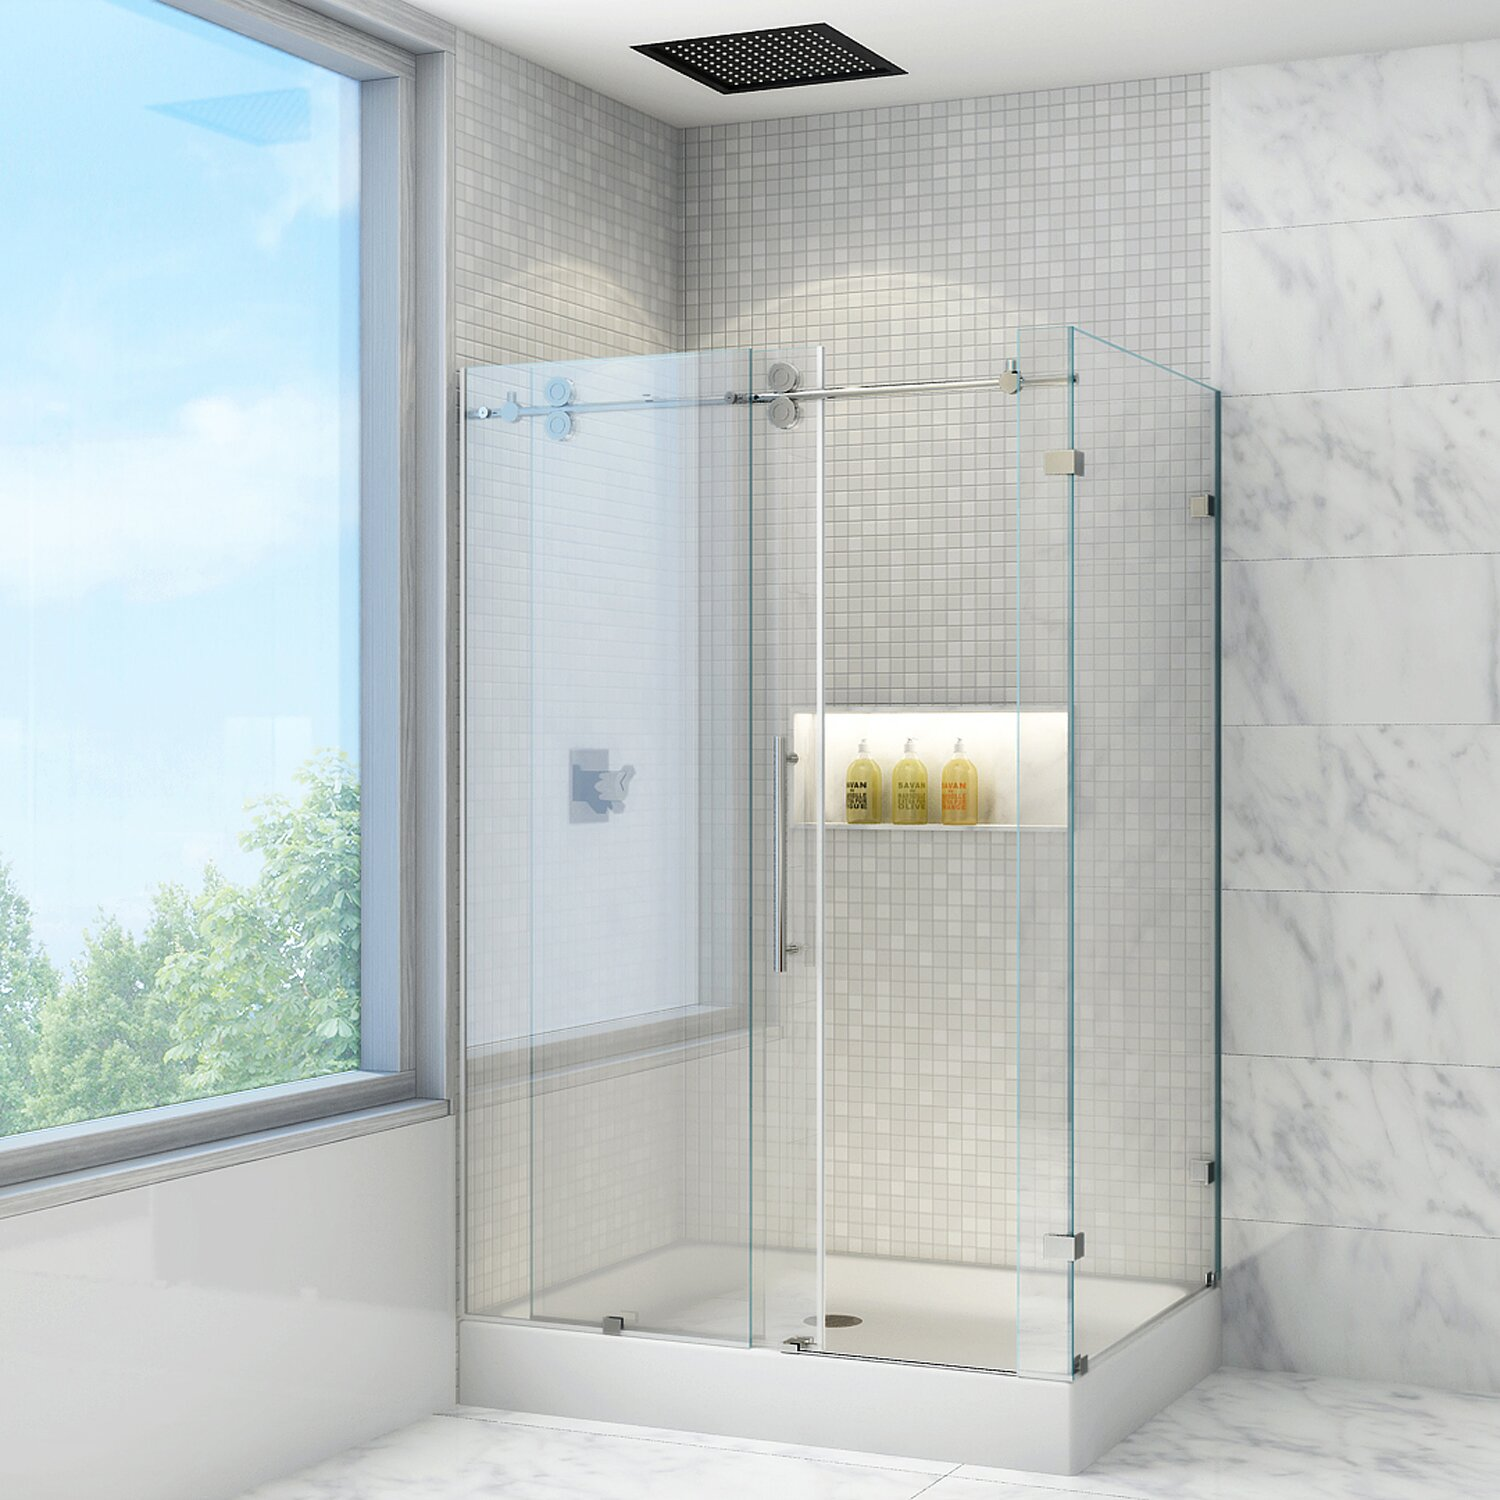 Stand Up Shower Elegant Shower Stalls For The Elderly Ehow With